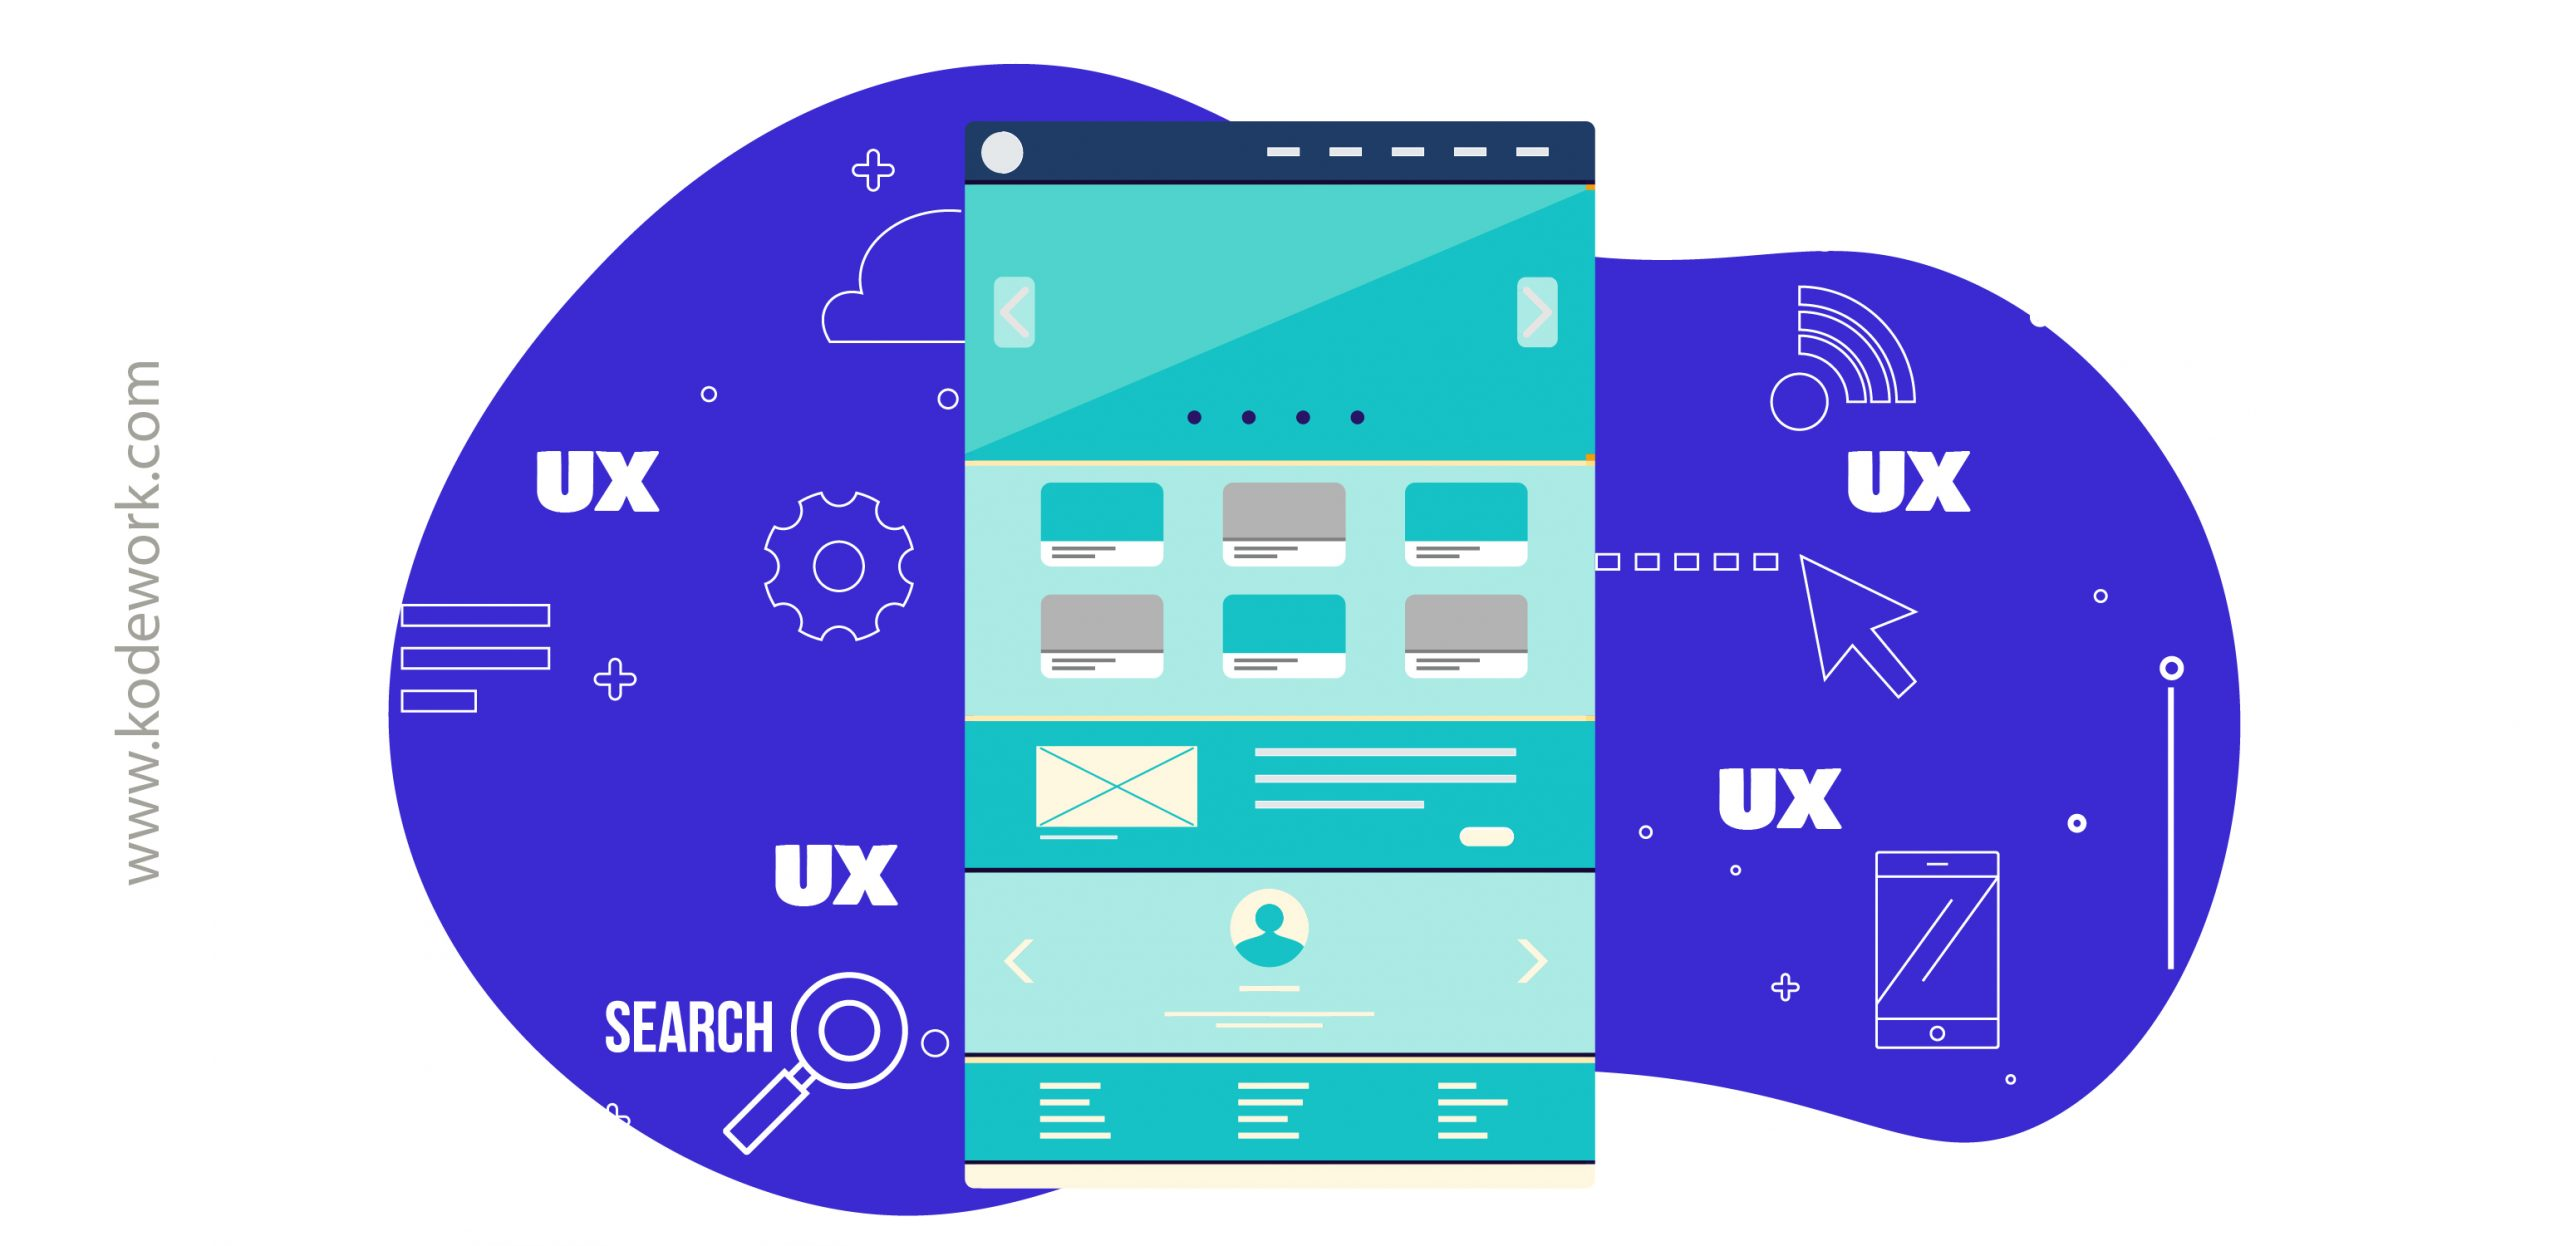 Ready to create your UX design? This is what you need to do